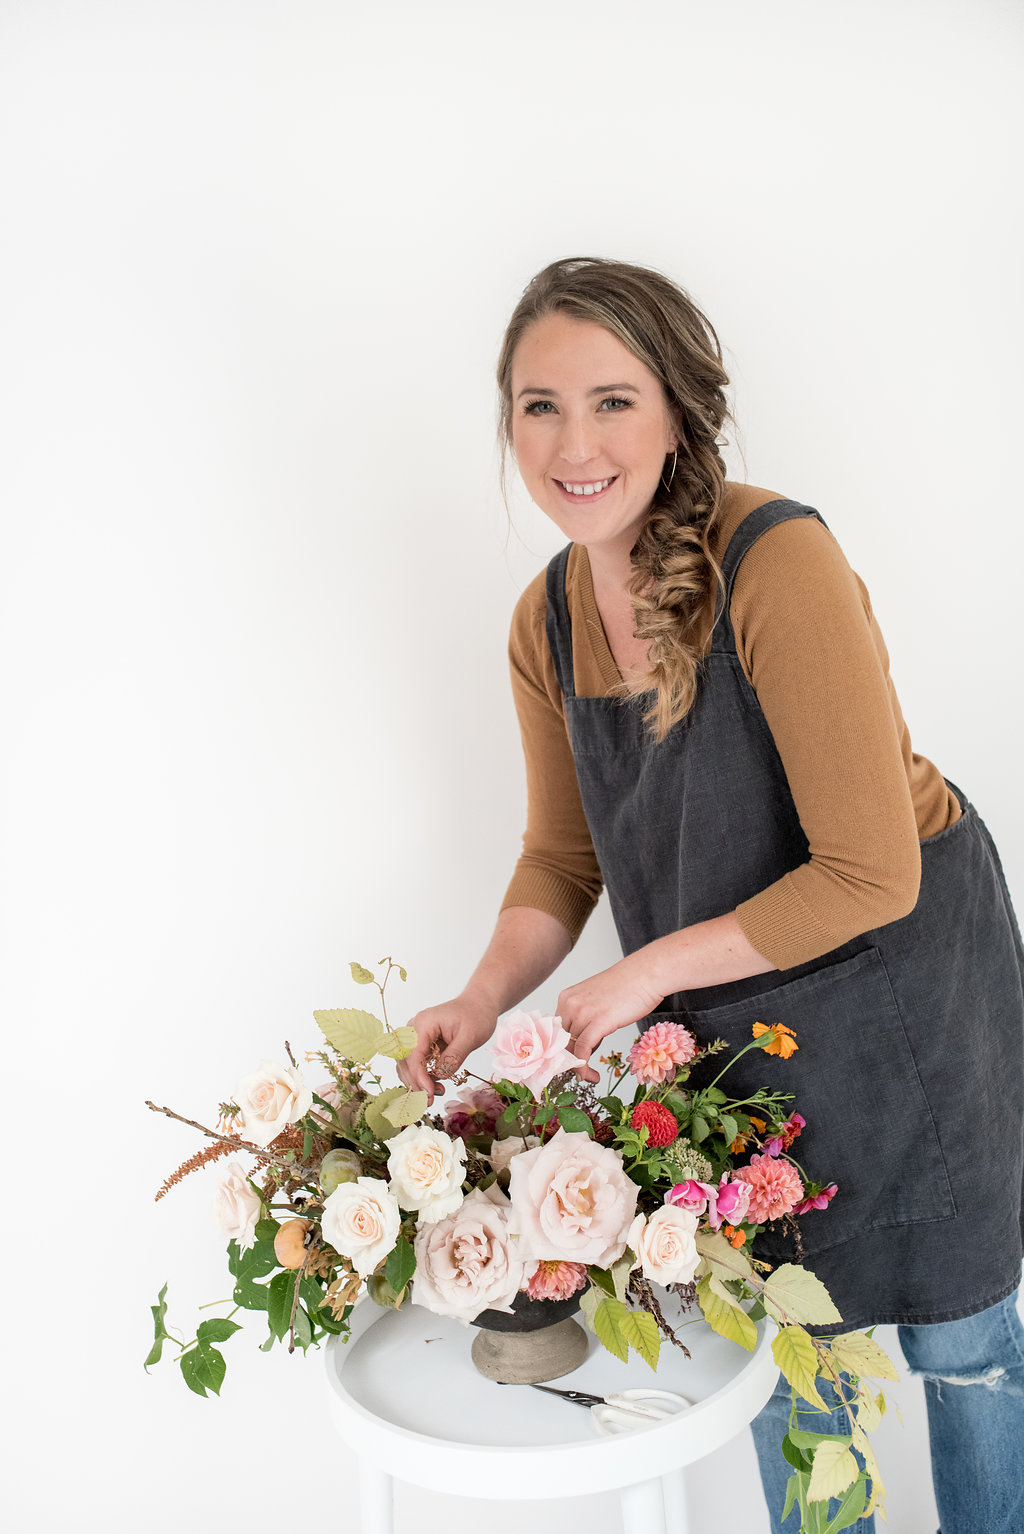 We create event flowers for clients who love nature &prioritize incorporating it's beauty into their celebration  -